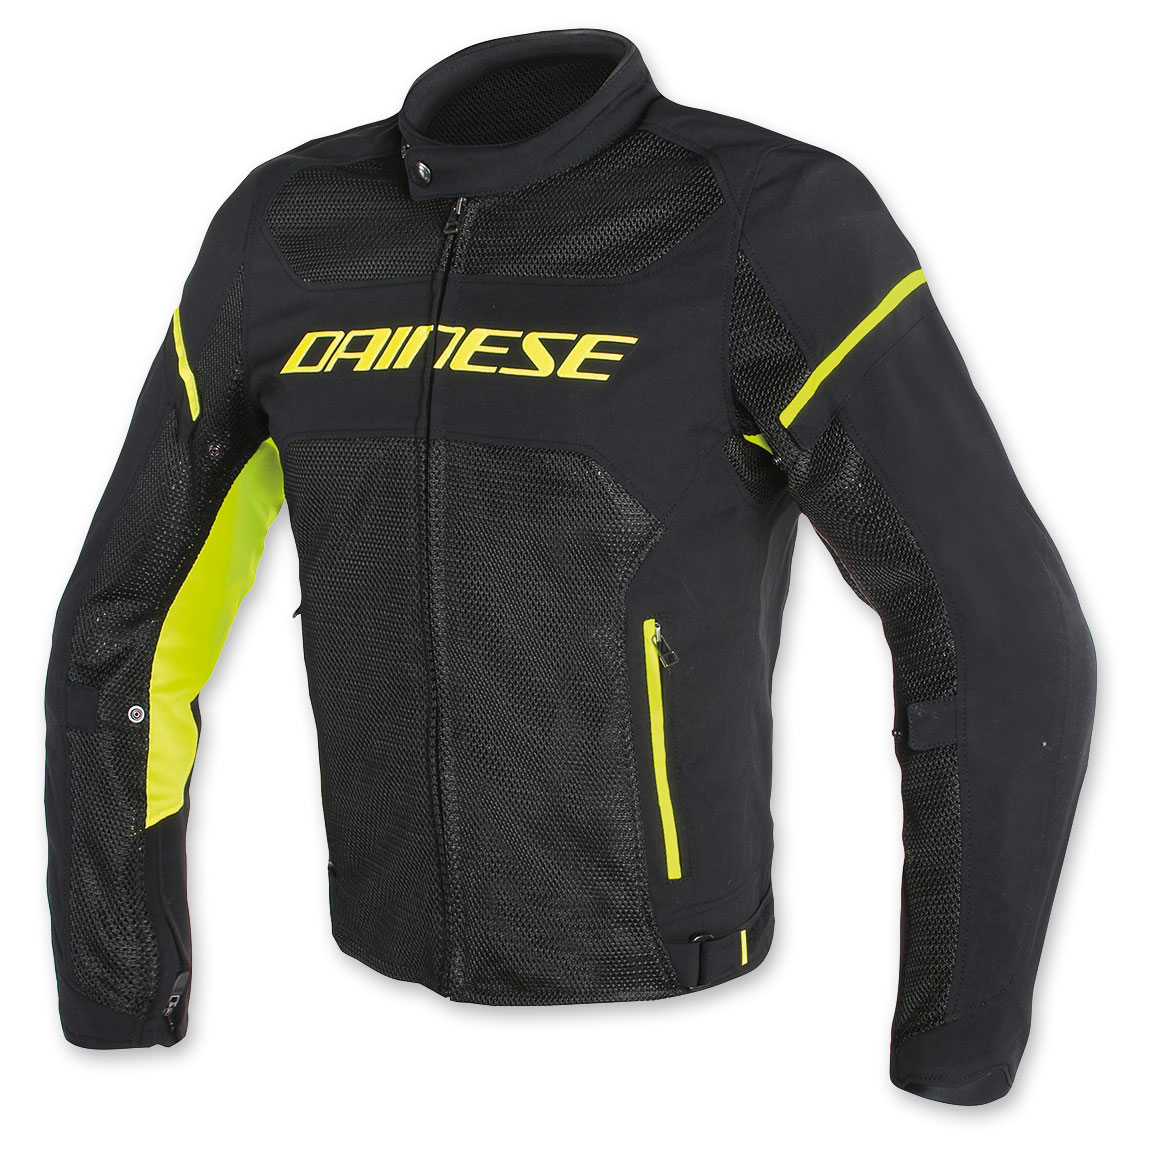 Dainese Men's Air Frame D1 Black/Black/Yellow-Fluo Jacket